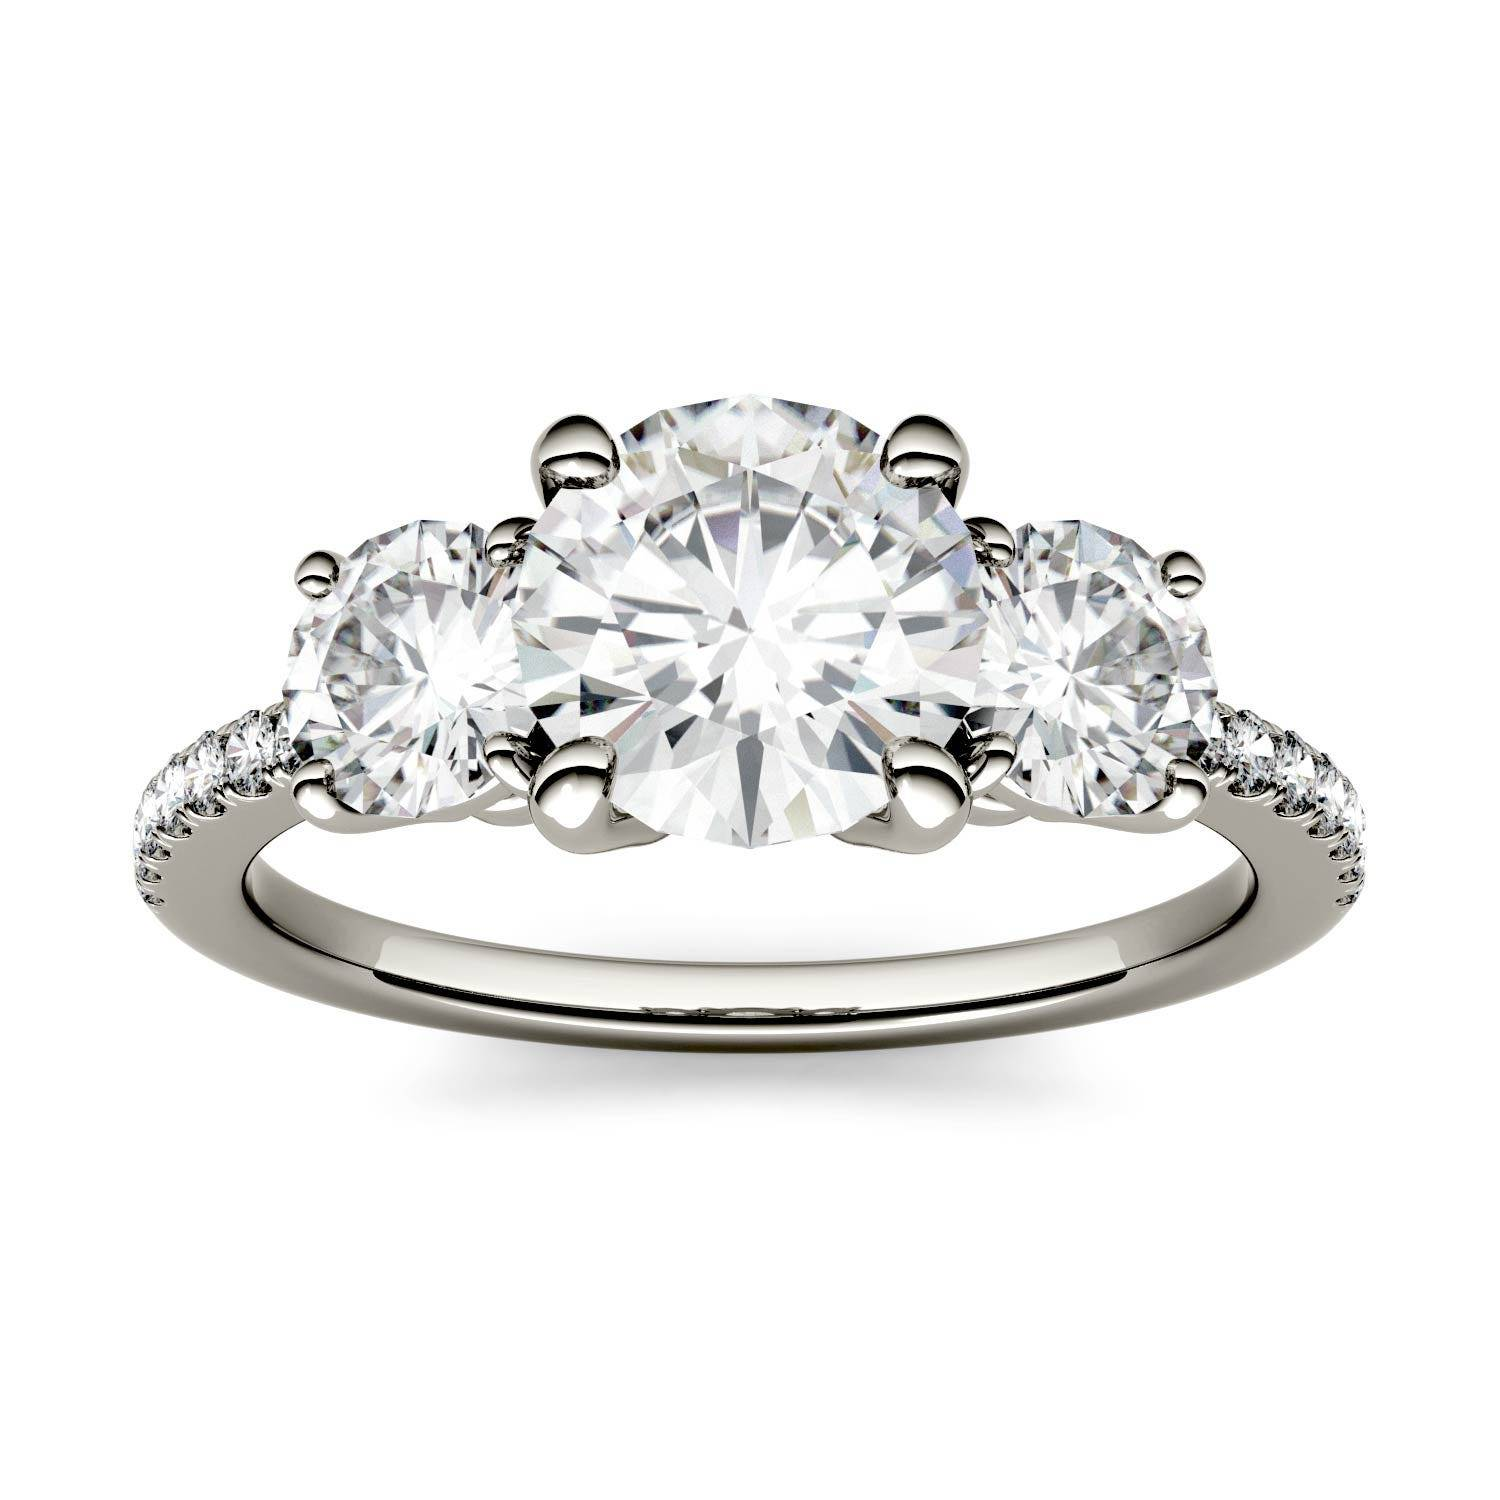 Charles & Colvard Three Stone with Side Accents Engagement Ring in 14K White Gold, Size: 8, 2.14CTW Round Forever One - Near-Colorless Moissanite Charles & Colvard  - White Gold - Size: 8